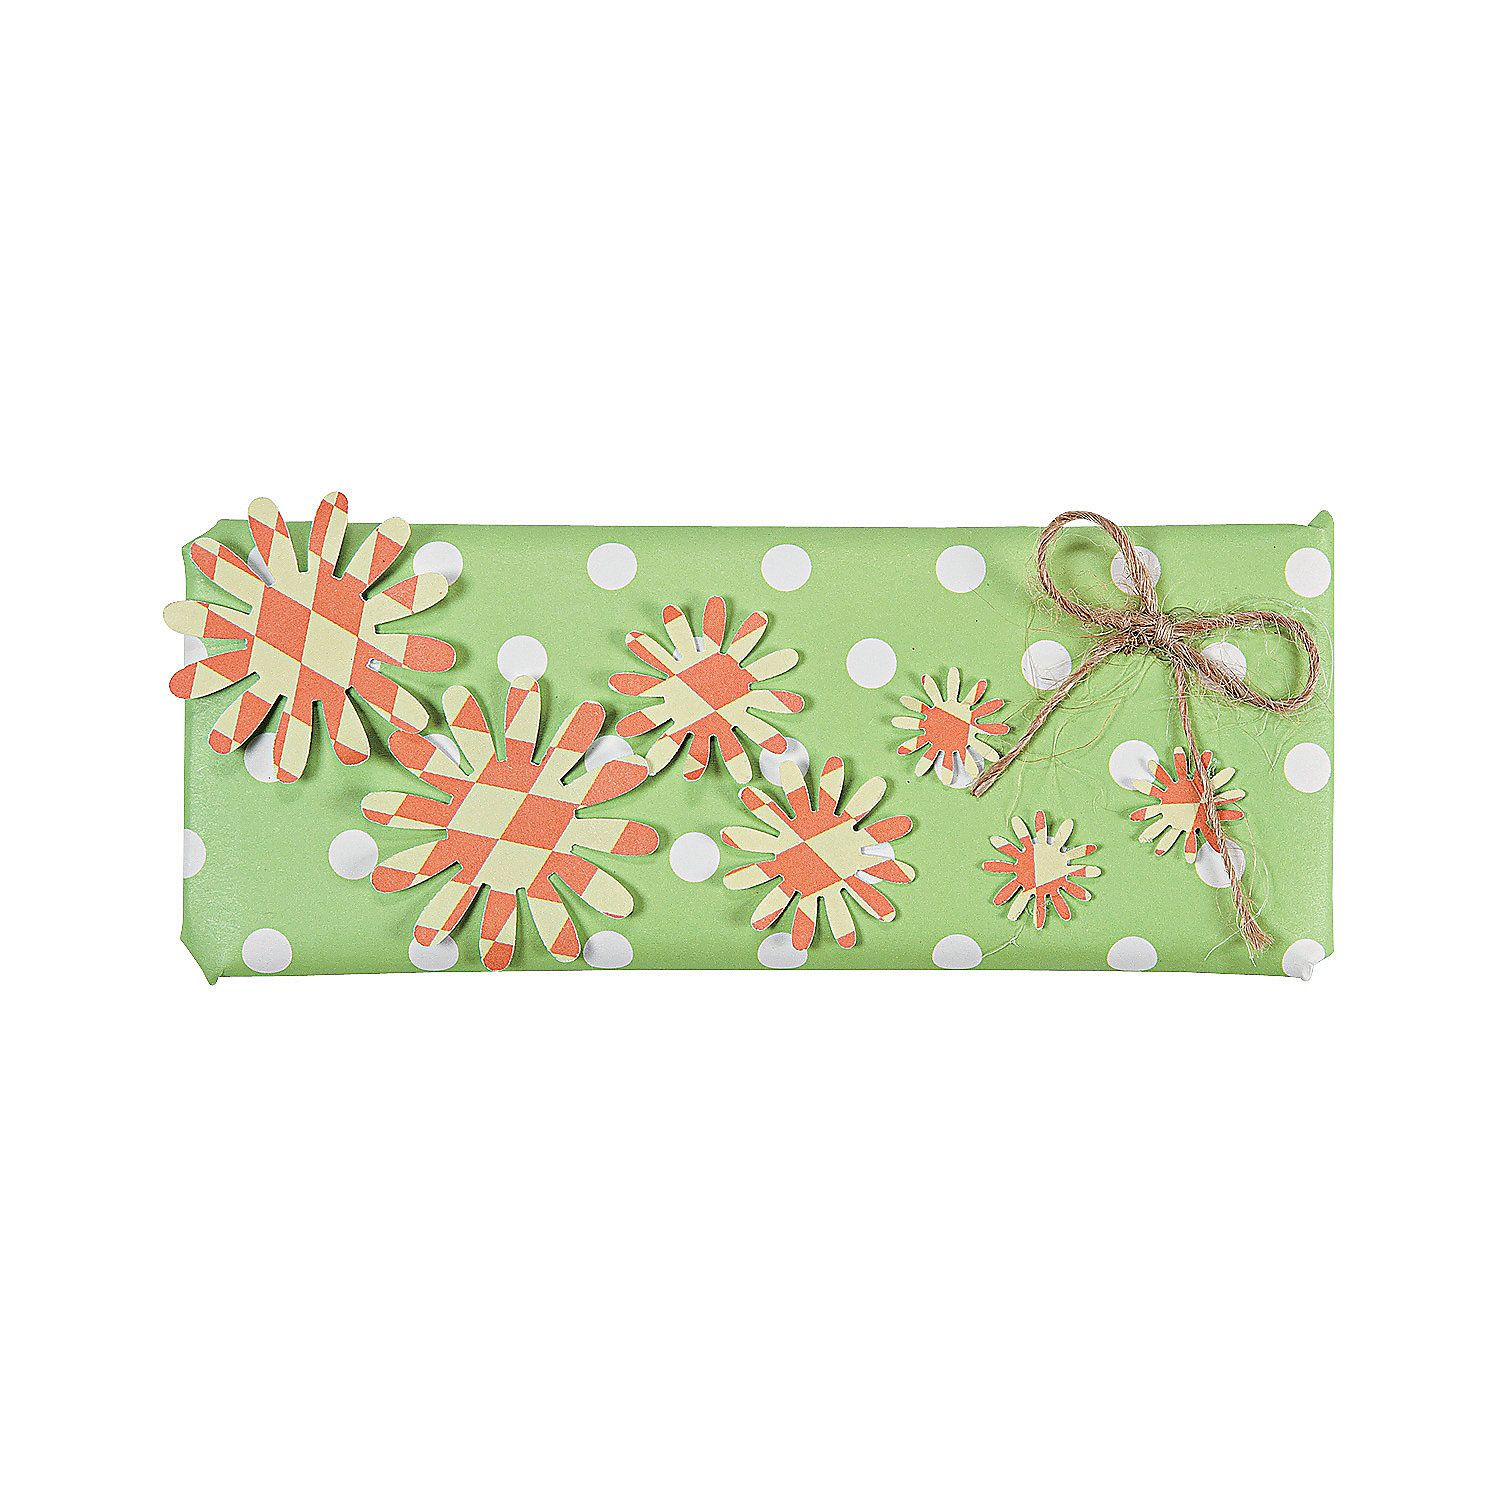 Flower Power Candy Bar Wrap Idea - OrientalTrading.com | fashion ...